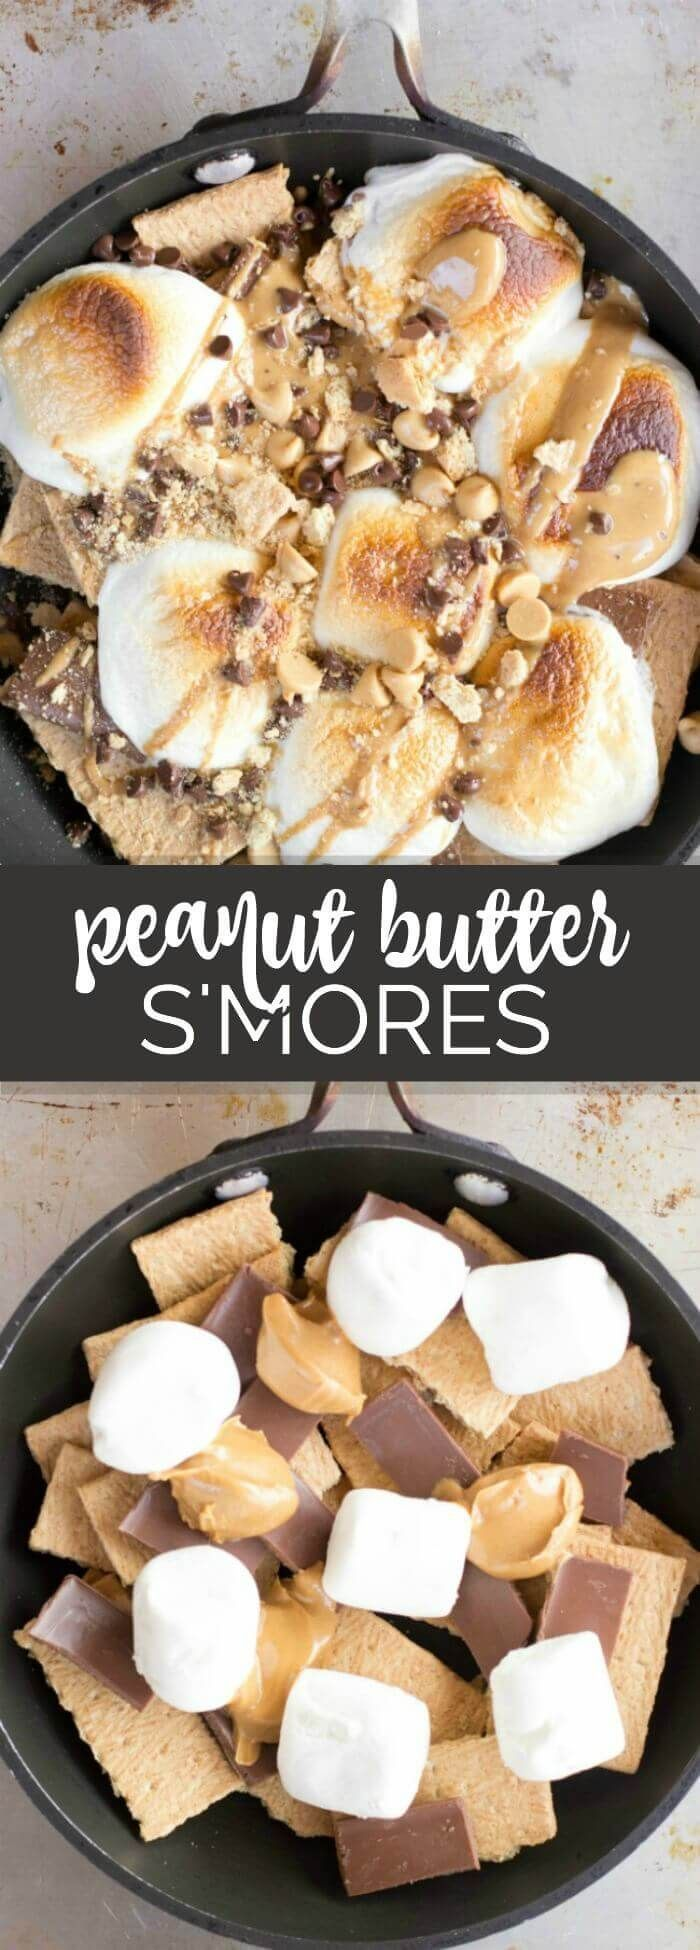 Chocolate Peanut Butter Oven S'mores Recipe